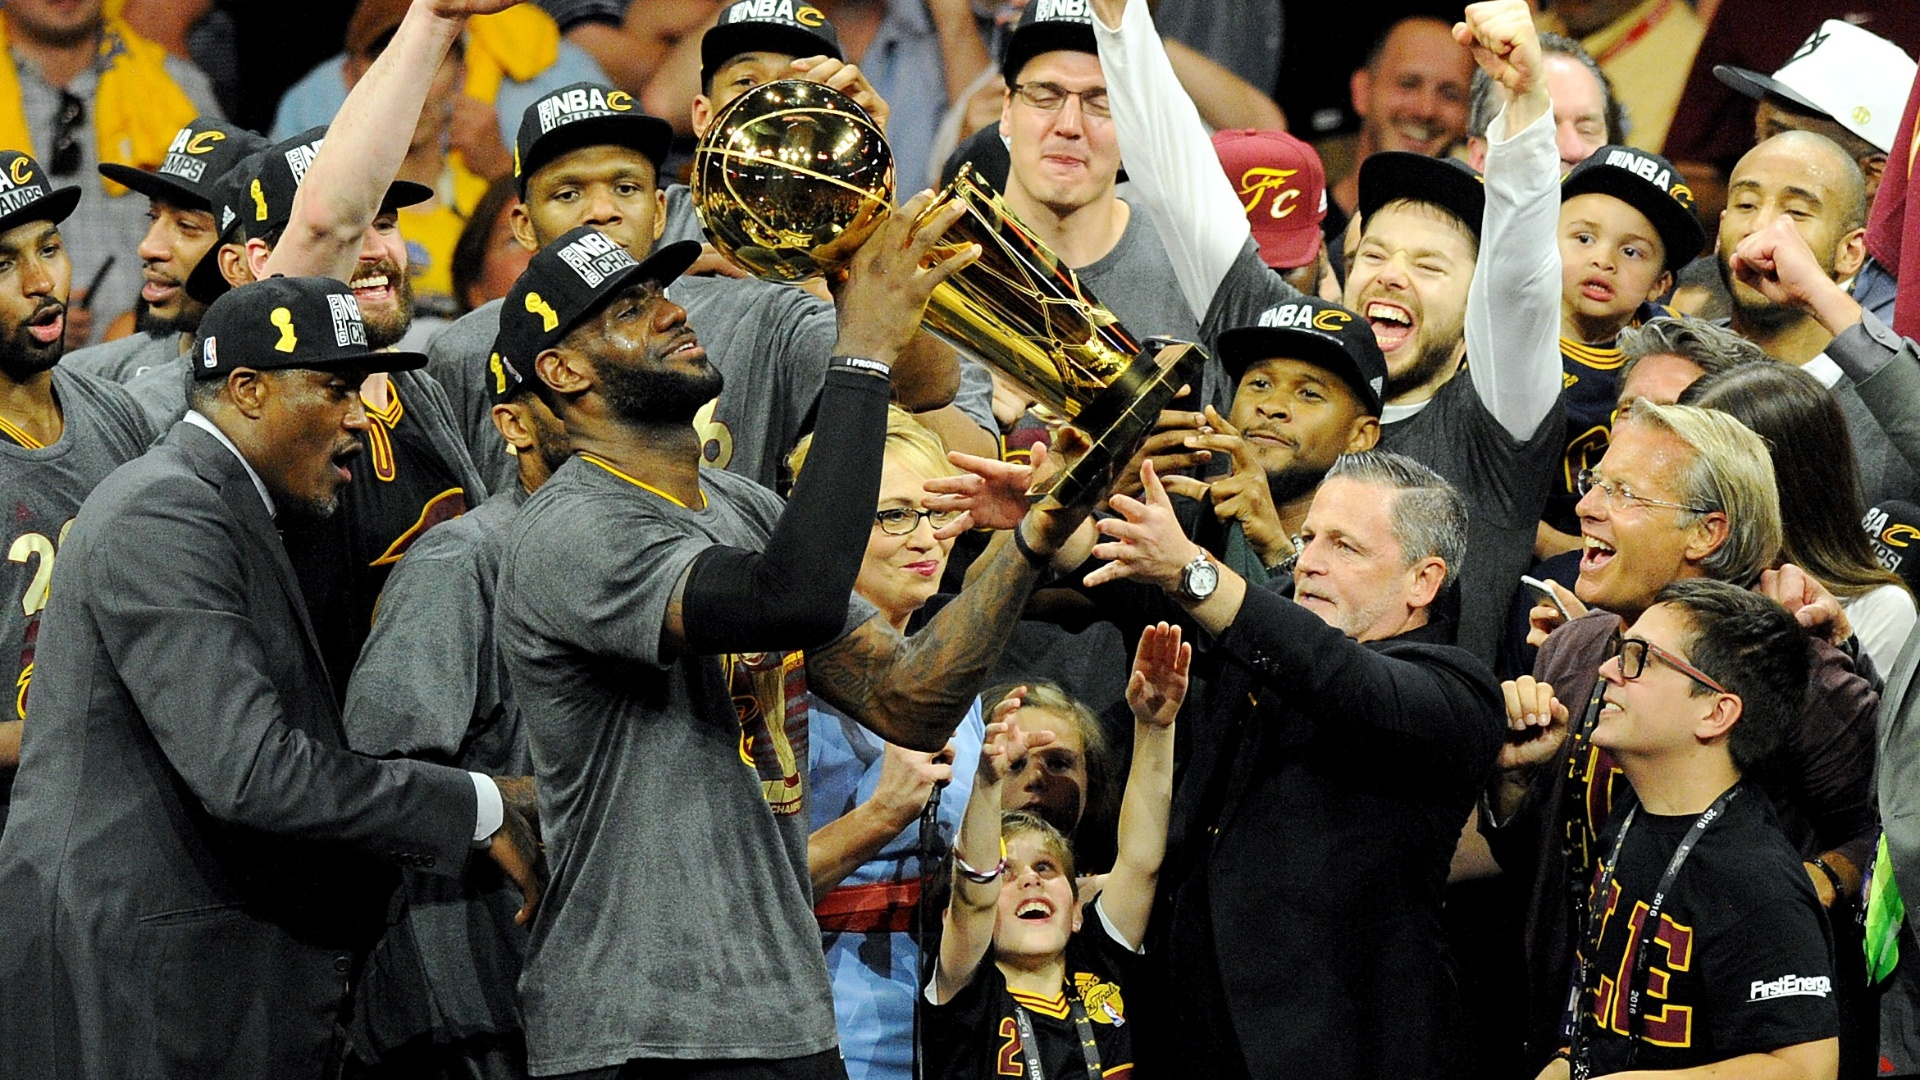 Cavs x Warriors - Finais da NBA - LeBron James com a taça de campeão